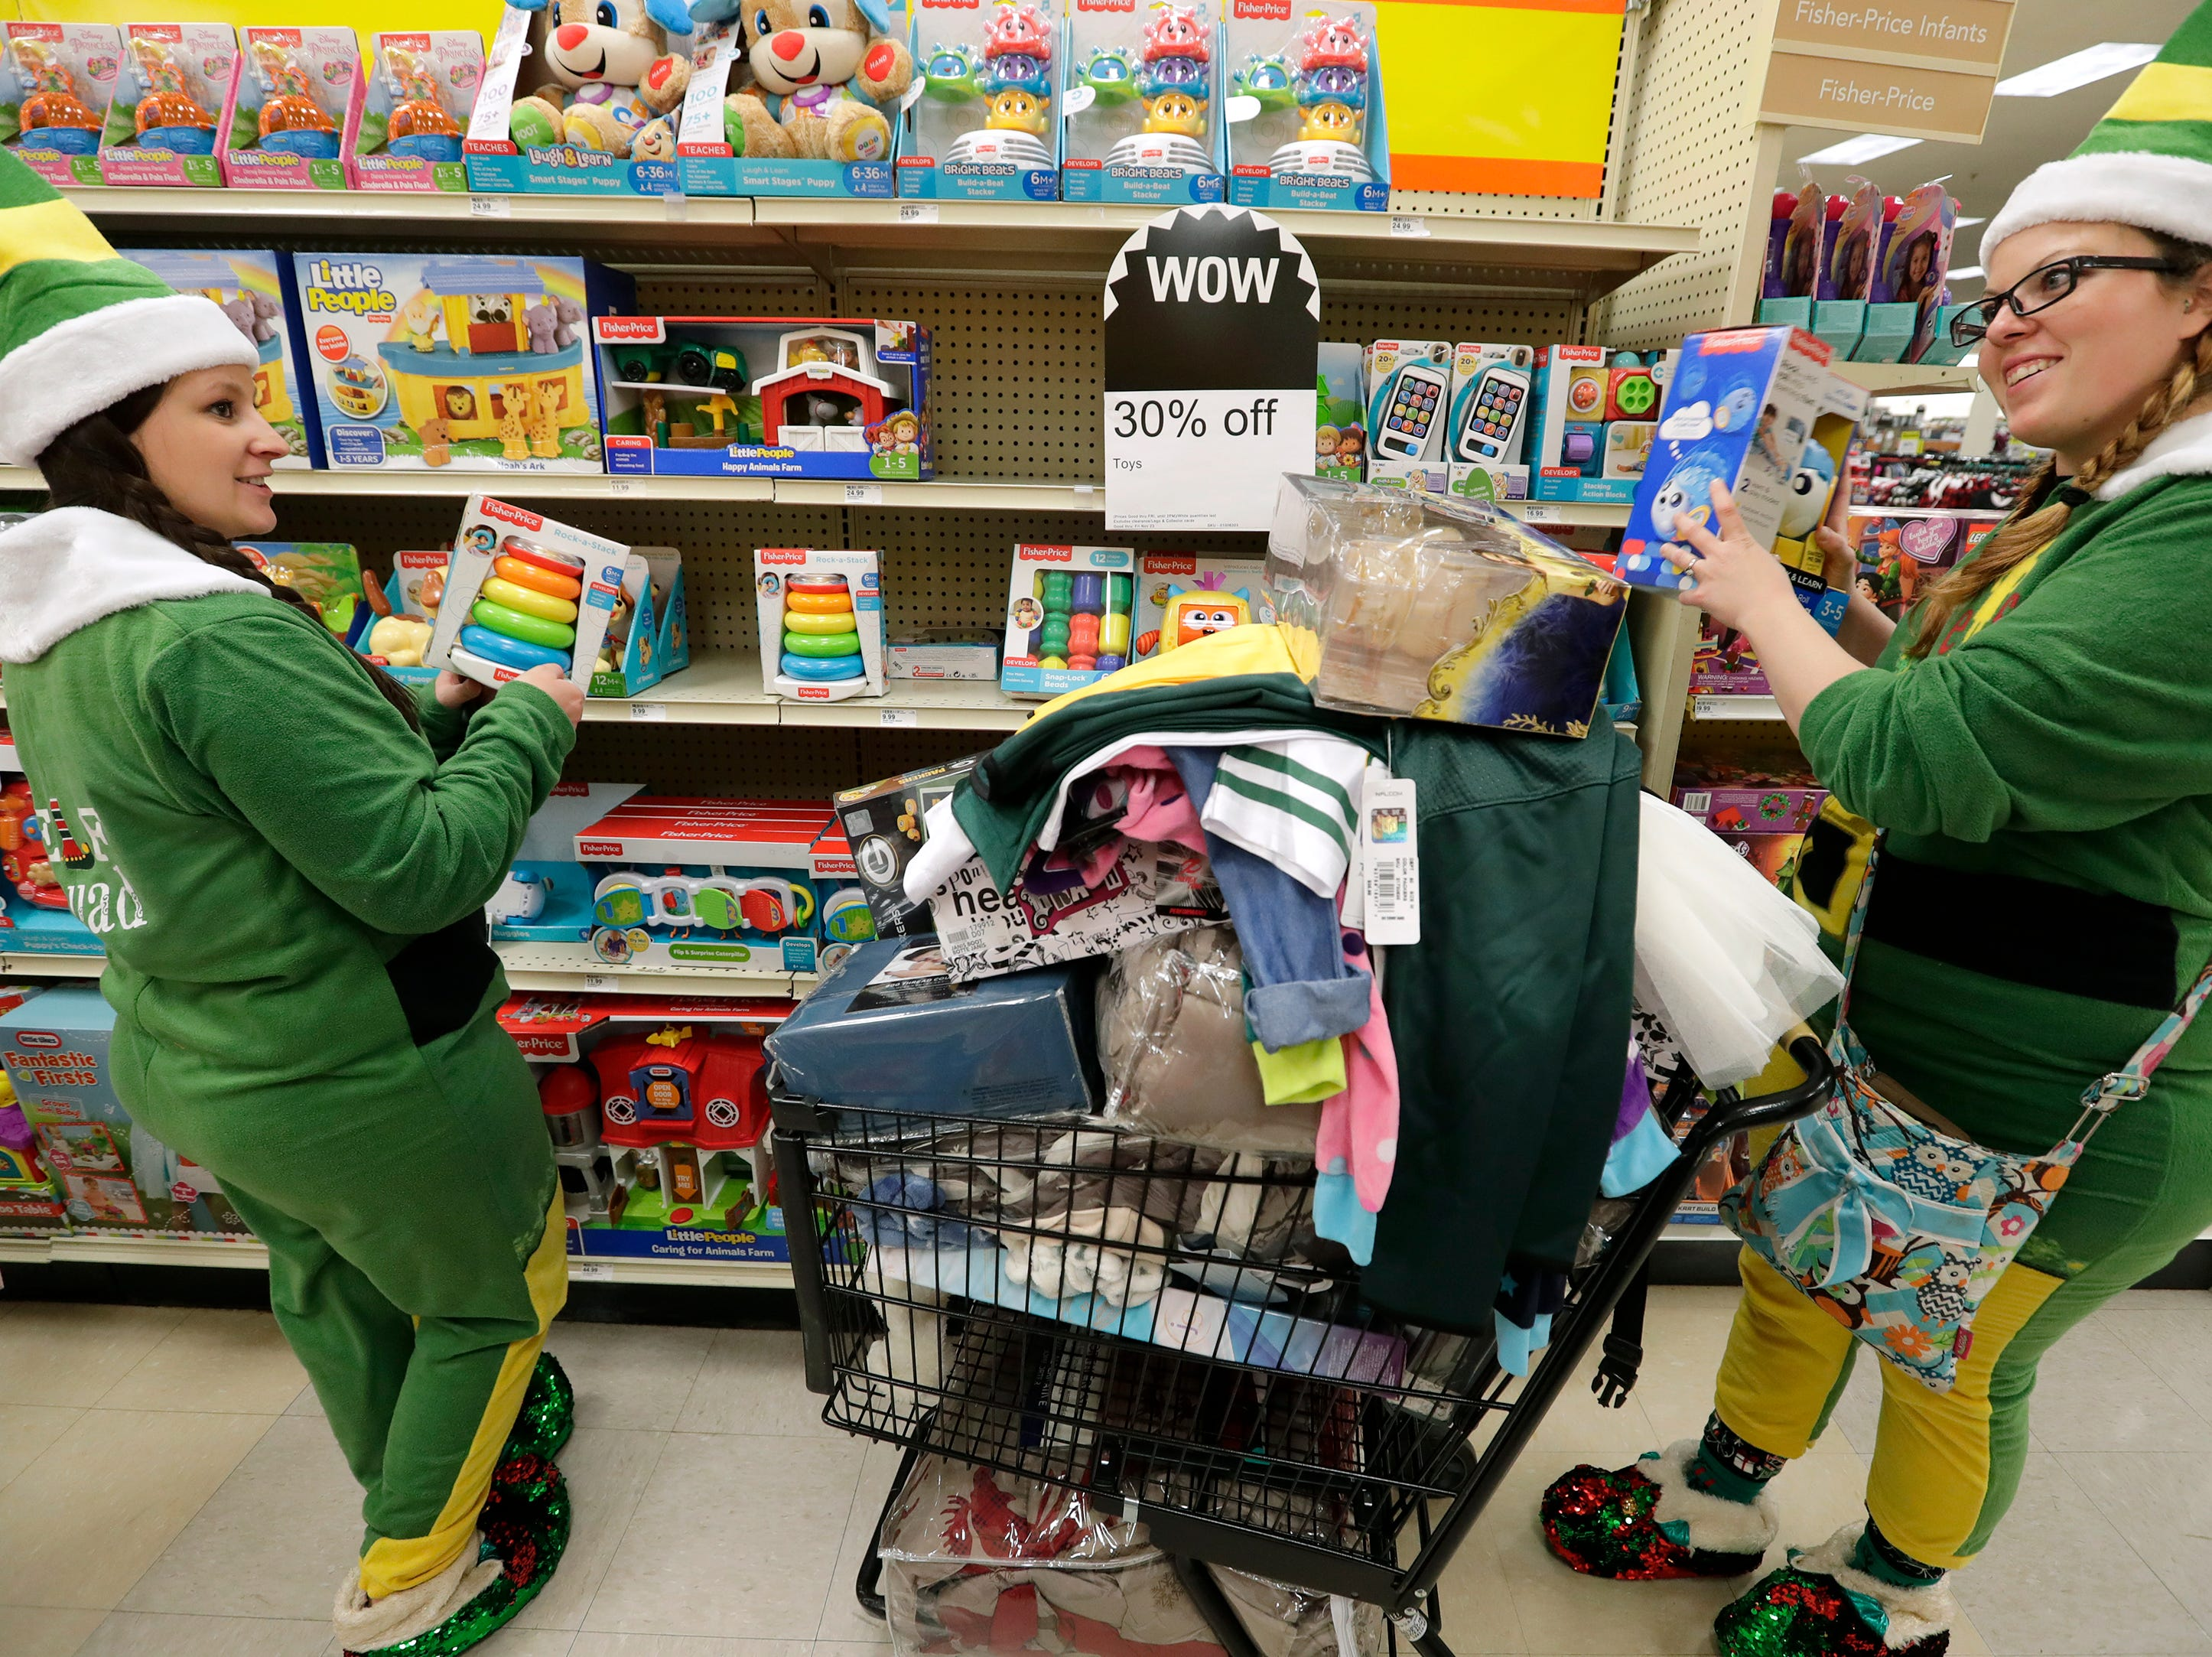 Dressed as elves, Morgan Dunbar, left, and Jennifer Hoagland shop for Black Friday deals at Shopko Thursday, November 22, 2018, in Appleton, Wis. 